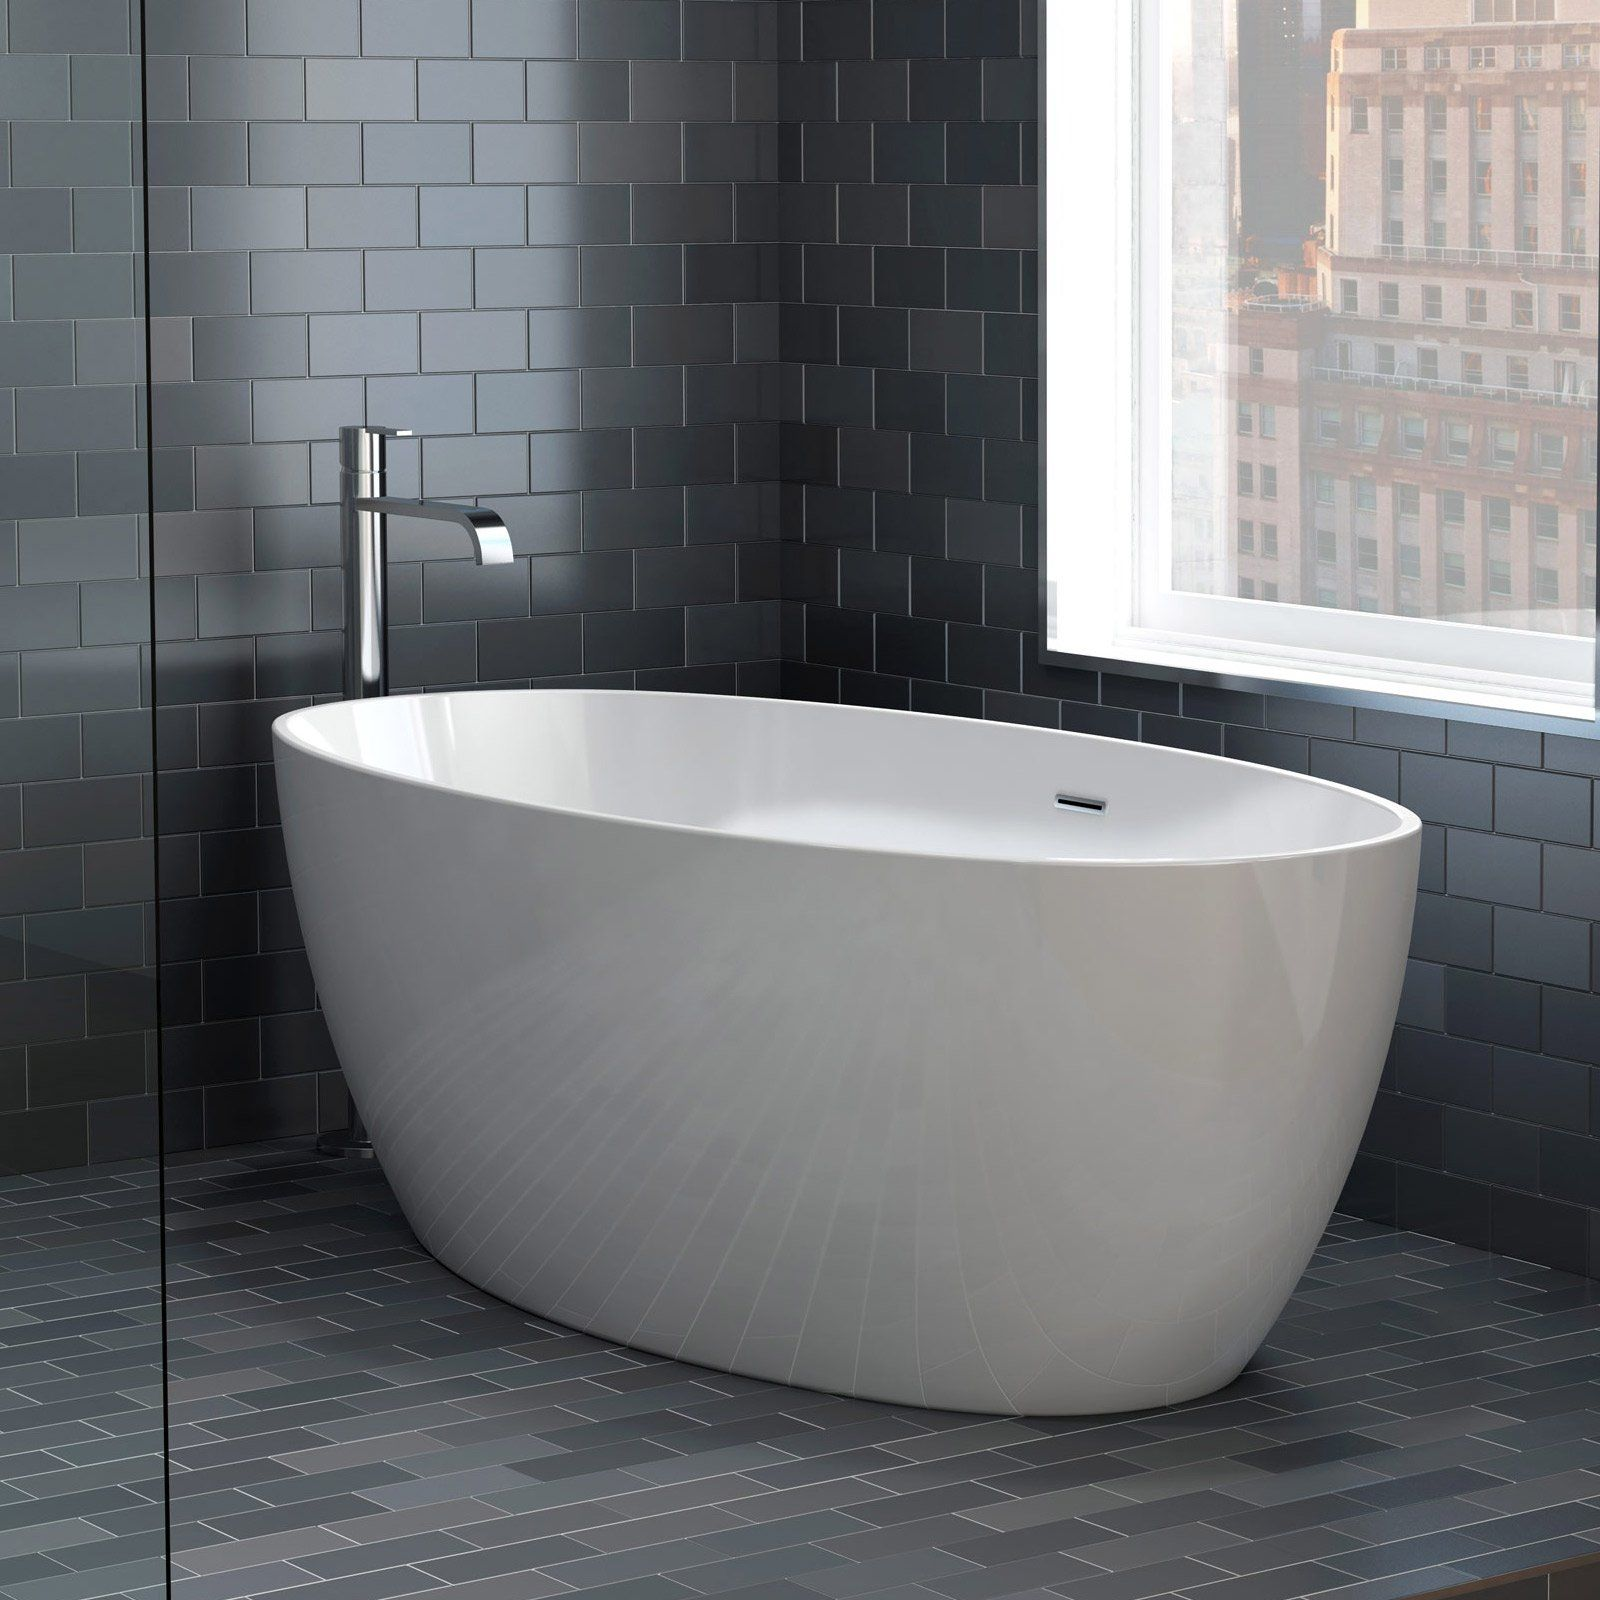 55 inch clawfoot tub. Aria Voce Petite 55 Inch Acrylic Double Ended Freestanding Bathtub